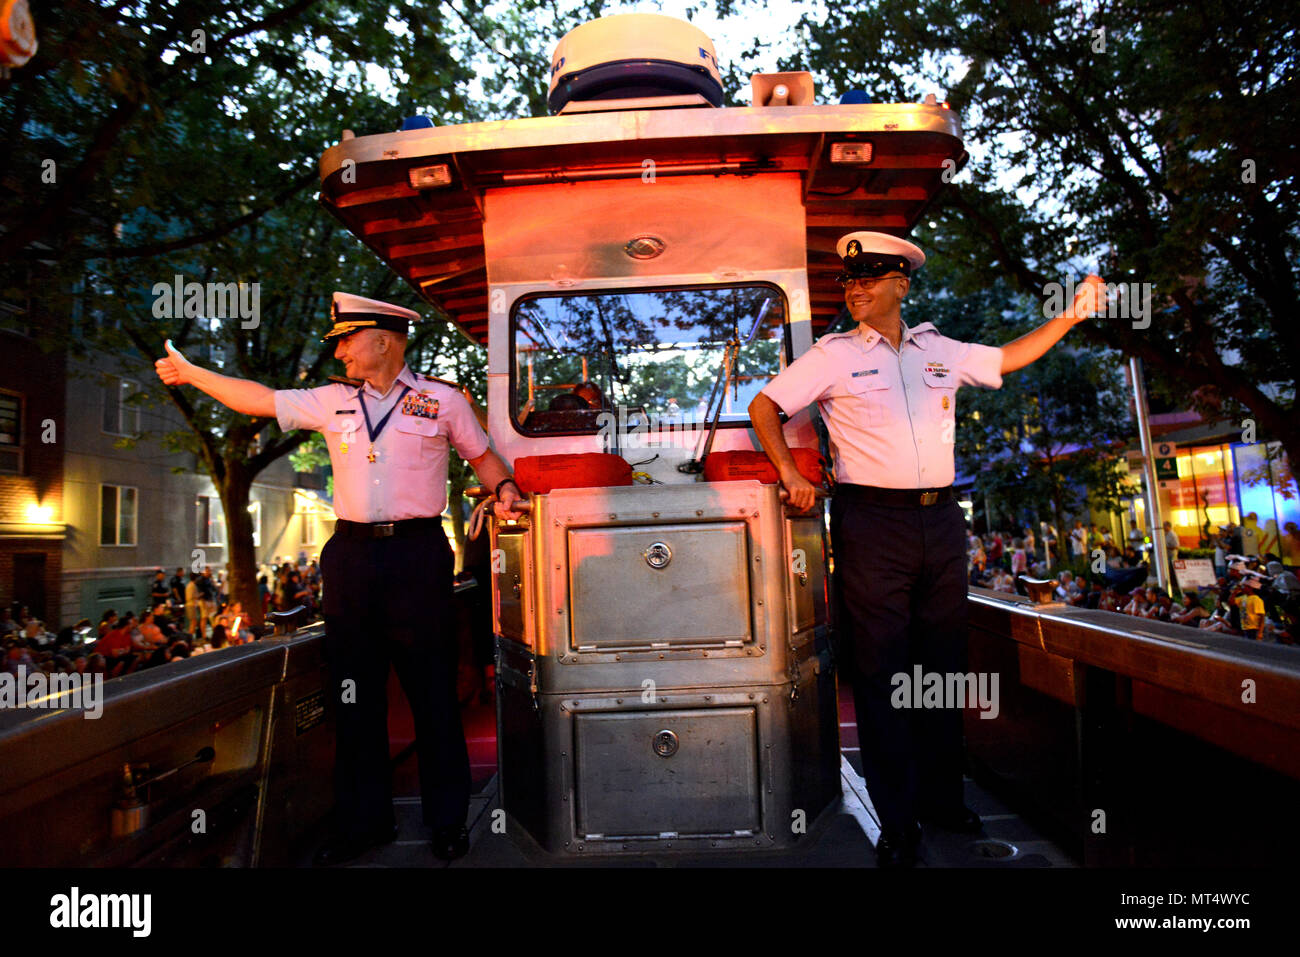 Rear Adm. David Throop, commander, U.S. Coast Guard 13th District, and Master Chief Petty Officer Sean McPhilamy, 13th Distirct Command Master Chief, wave to spectators, July 29, 2017, at the 68th Seafair Torchlight Parade. Throop and McPhilamy rode along in a 26-foot boat from the Aids to Navigation Team Puget Sound. U.S. Coast Guard photo by Petty Officer 1st Class Ayla Kelley. - Stock Image